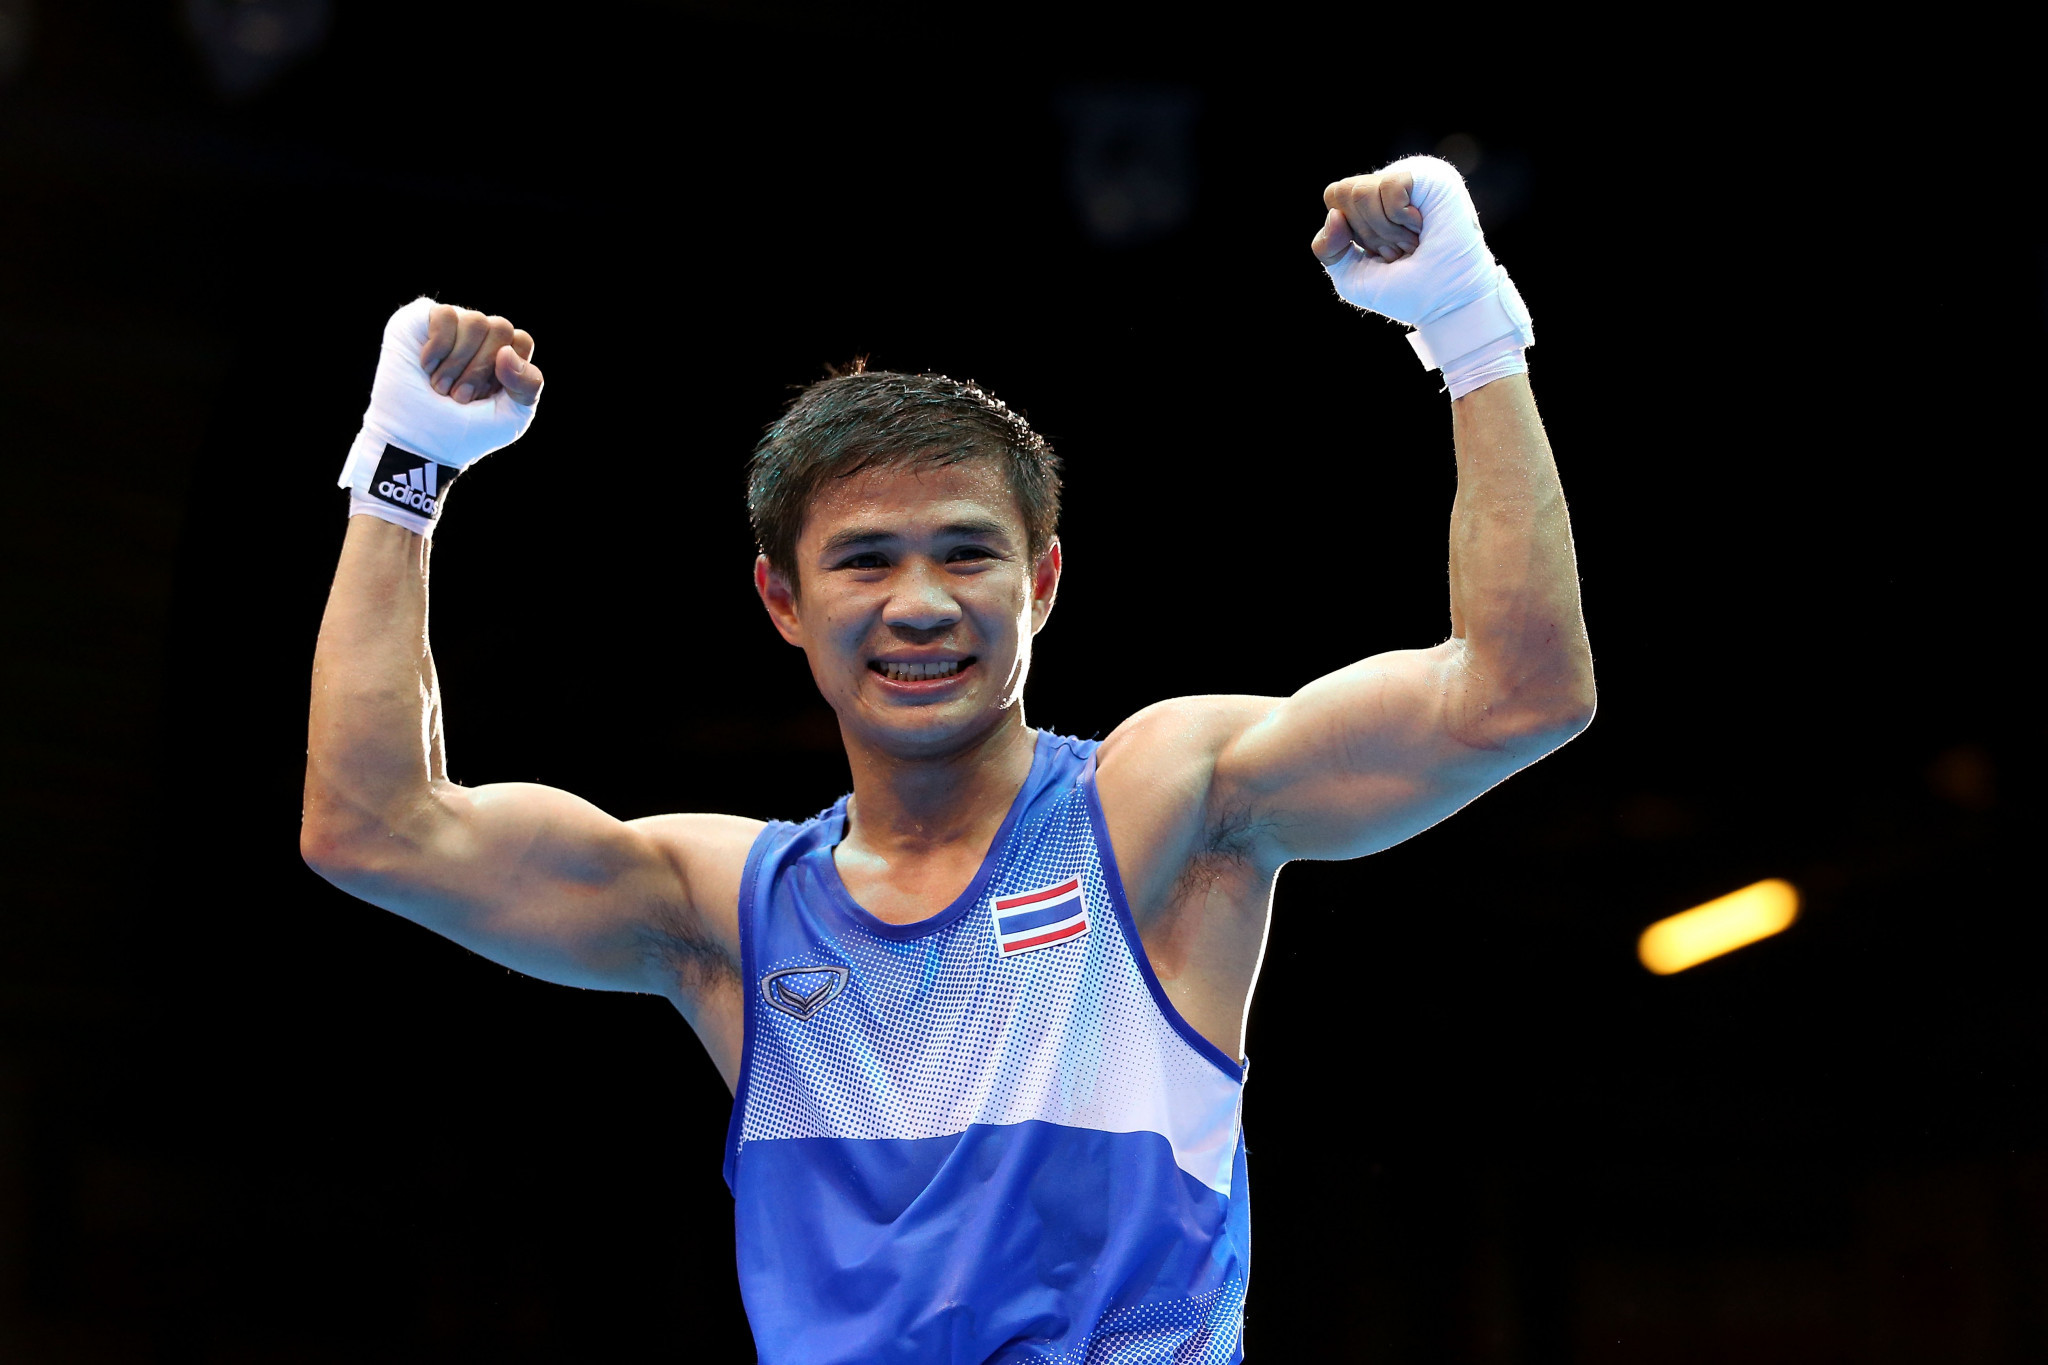 Boxing is one of Thailand's most successful sports at the Olympics ©Getty Images